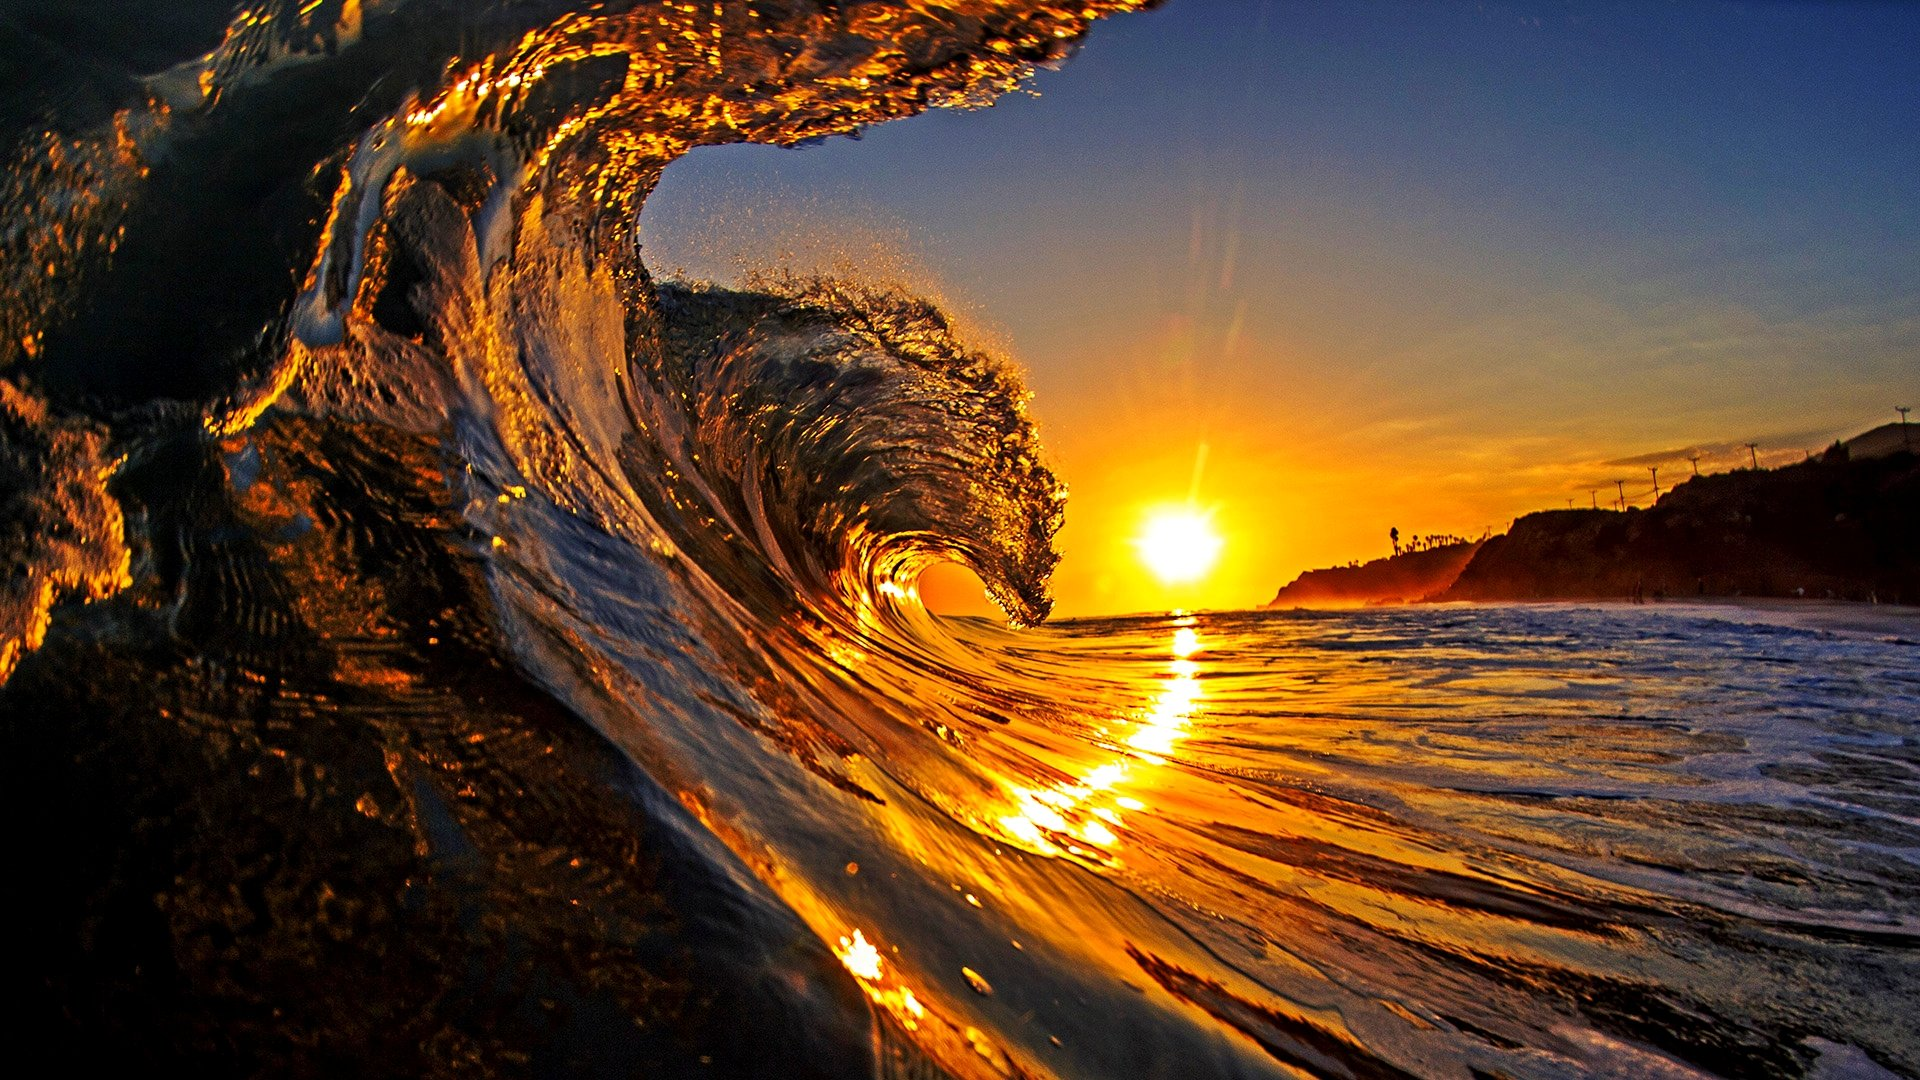 Majestic wave at sunrise, California, USA --- Image by © David Pu'u/Corbis